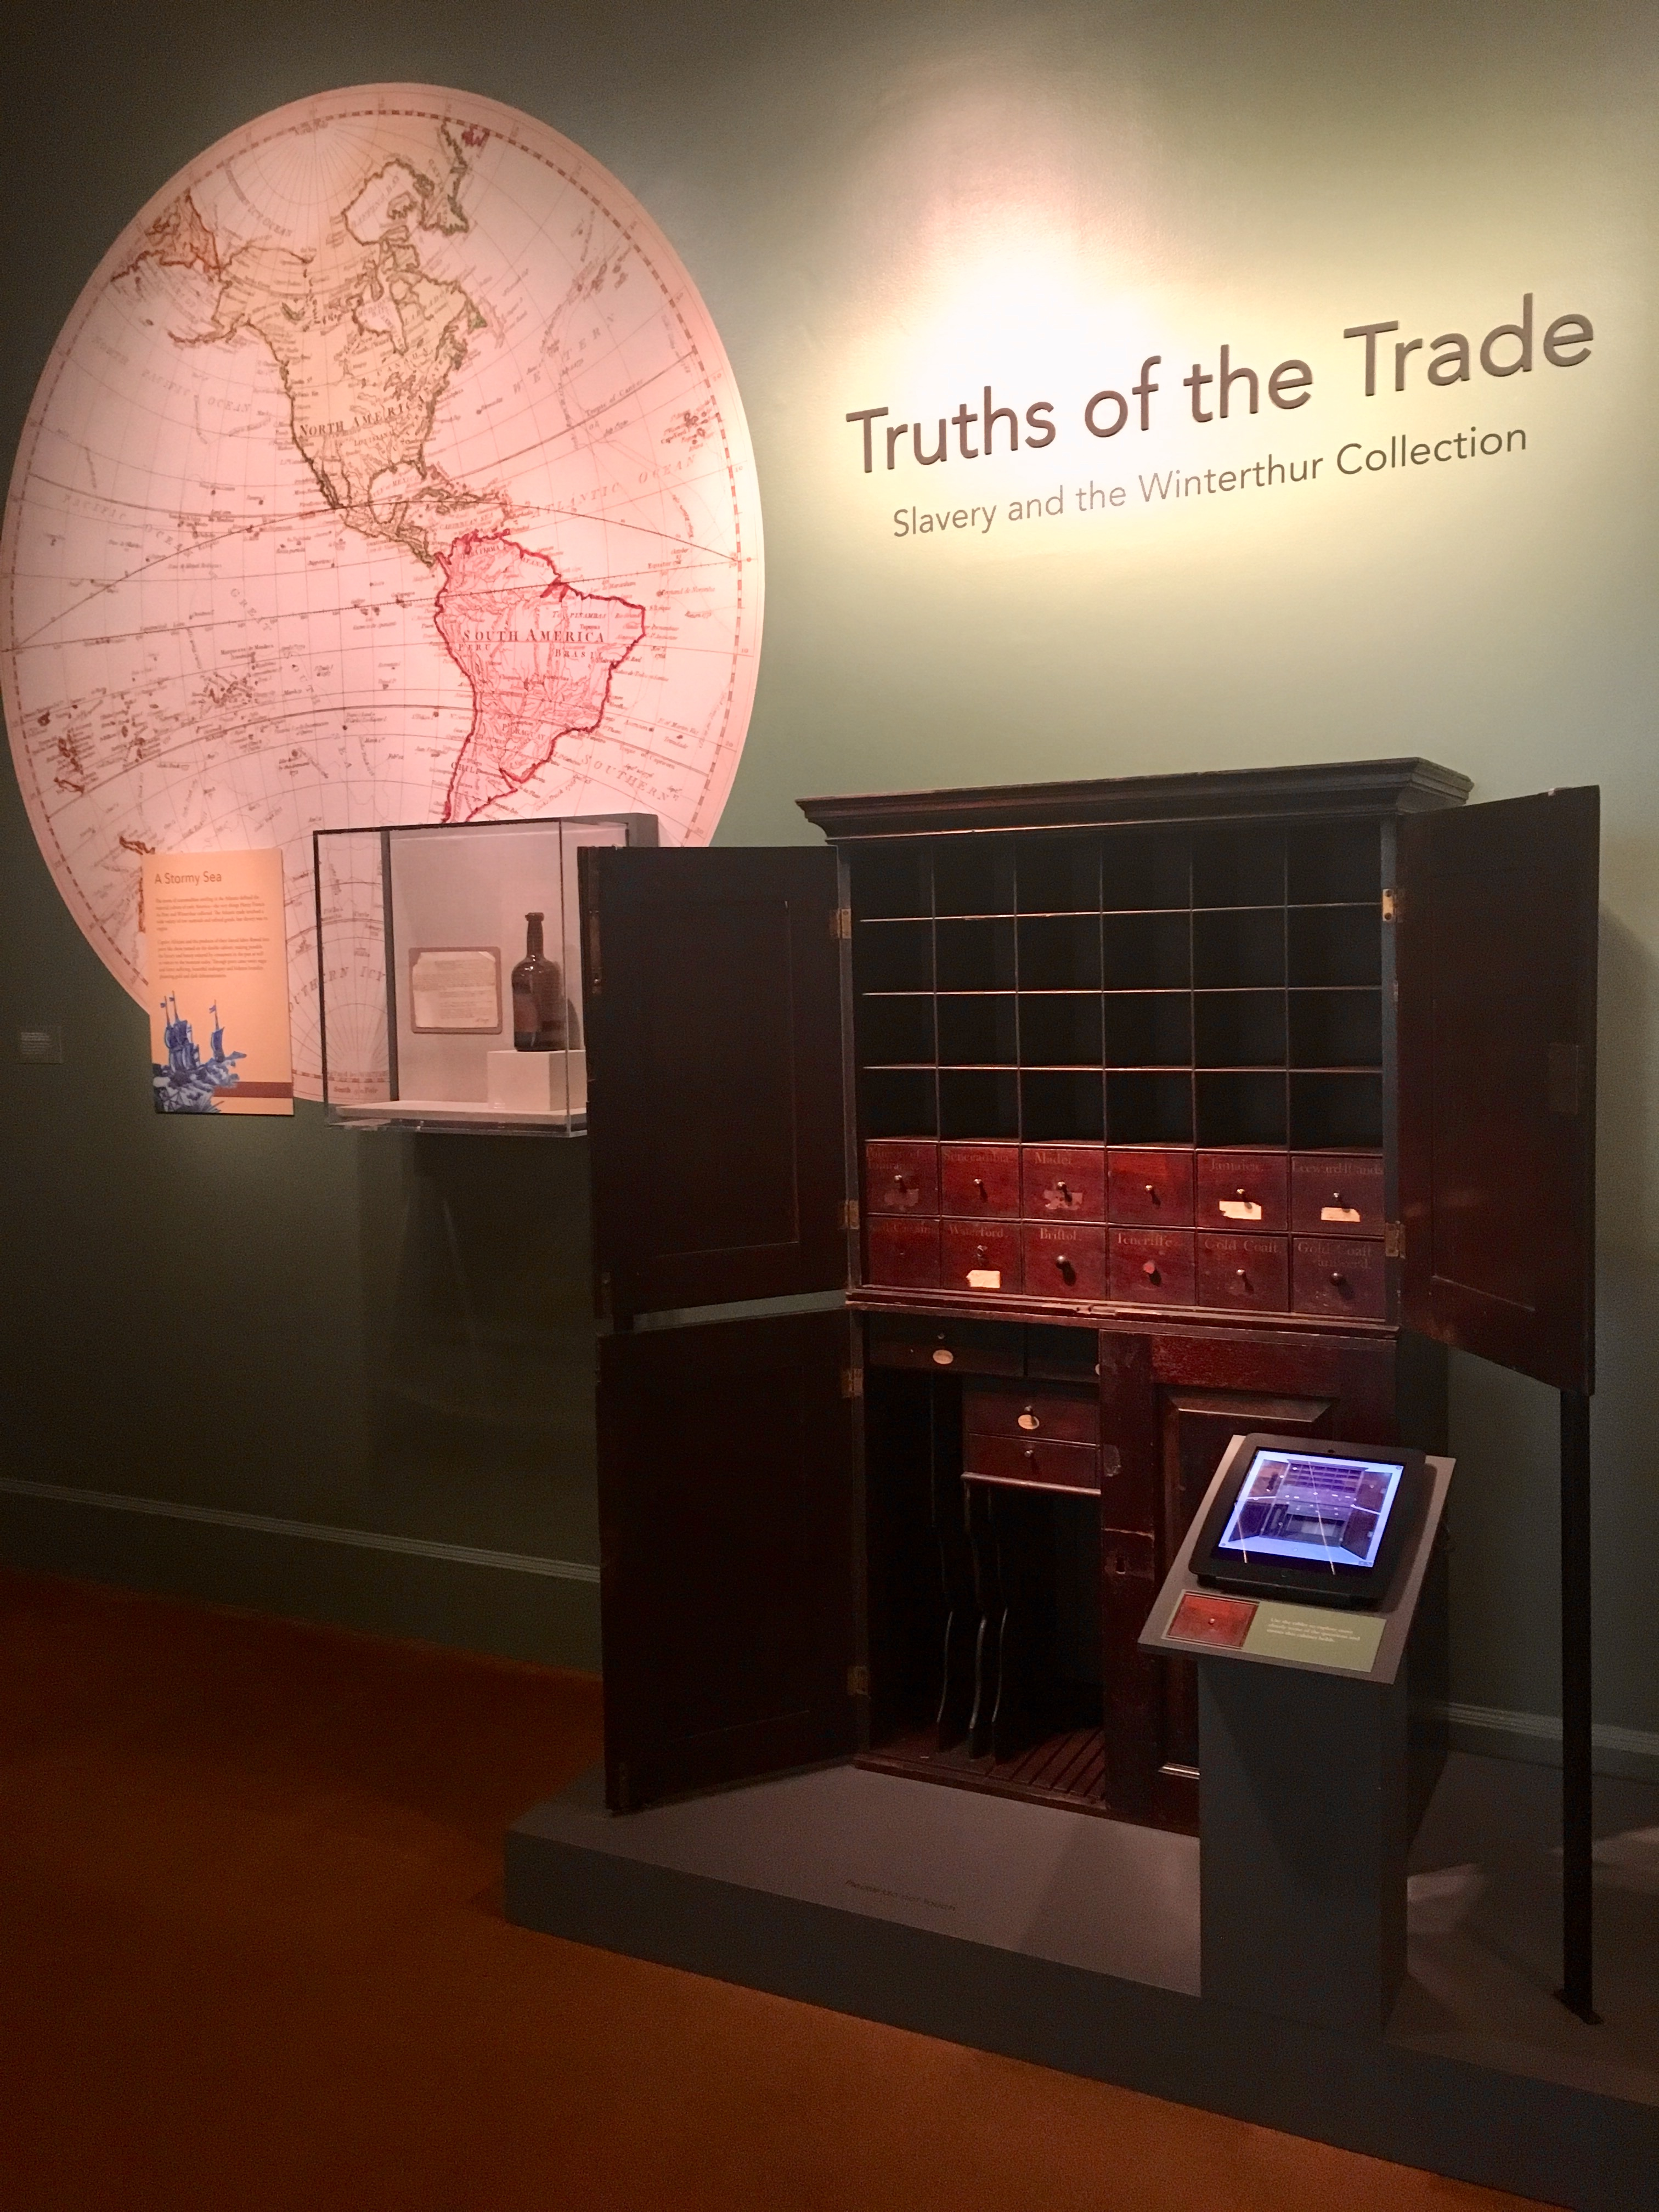 A view inside the Truths of the Trade exhibit featuring the mahogany double cabinet at center along with the the ipad touch screen interactive in the front.